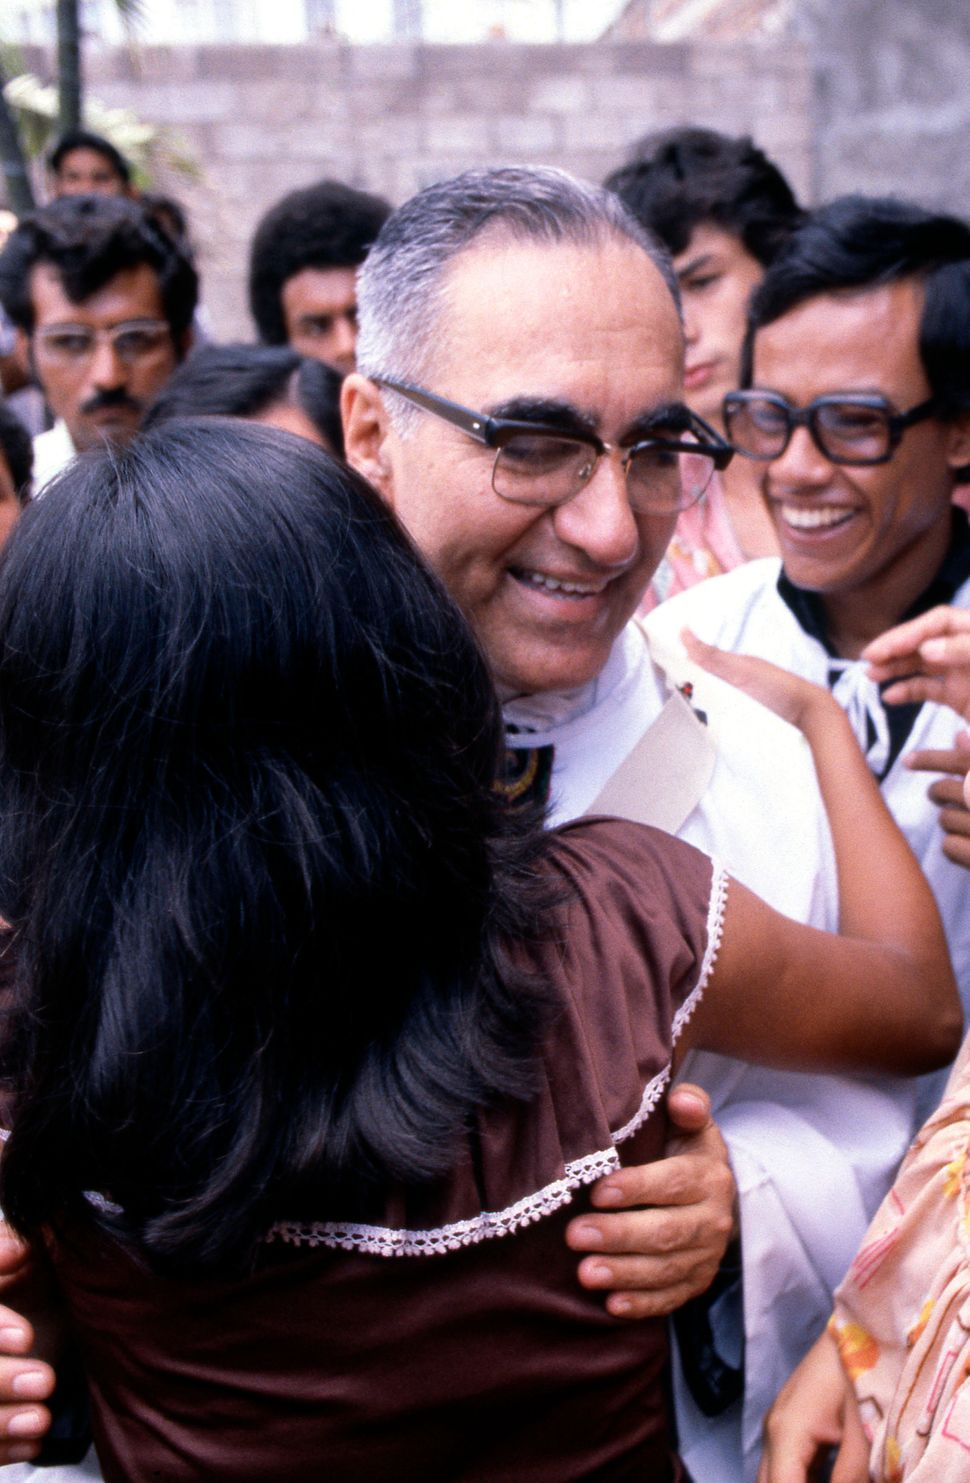 Jan 1, 1979 - San Salvador, El Salvador - EXCLUSIVE - The martyr Archbishop Oscar Romero of El Salvador is hugged by a parish